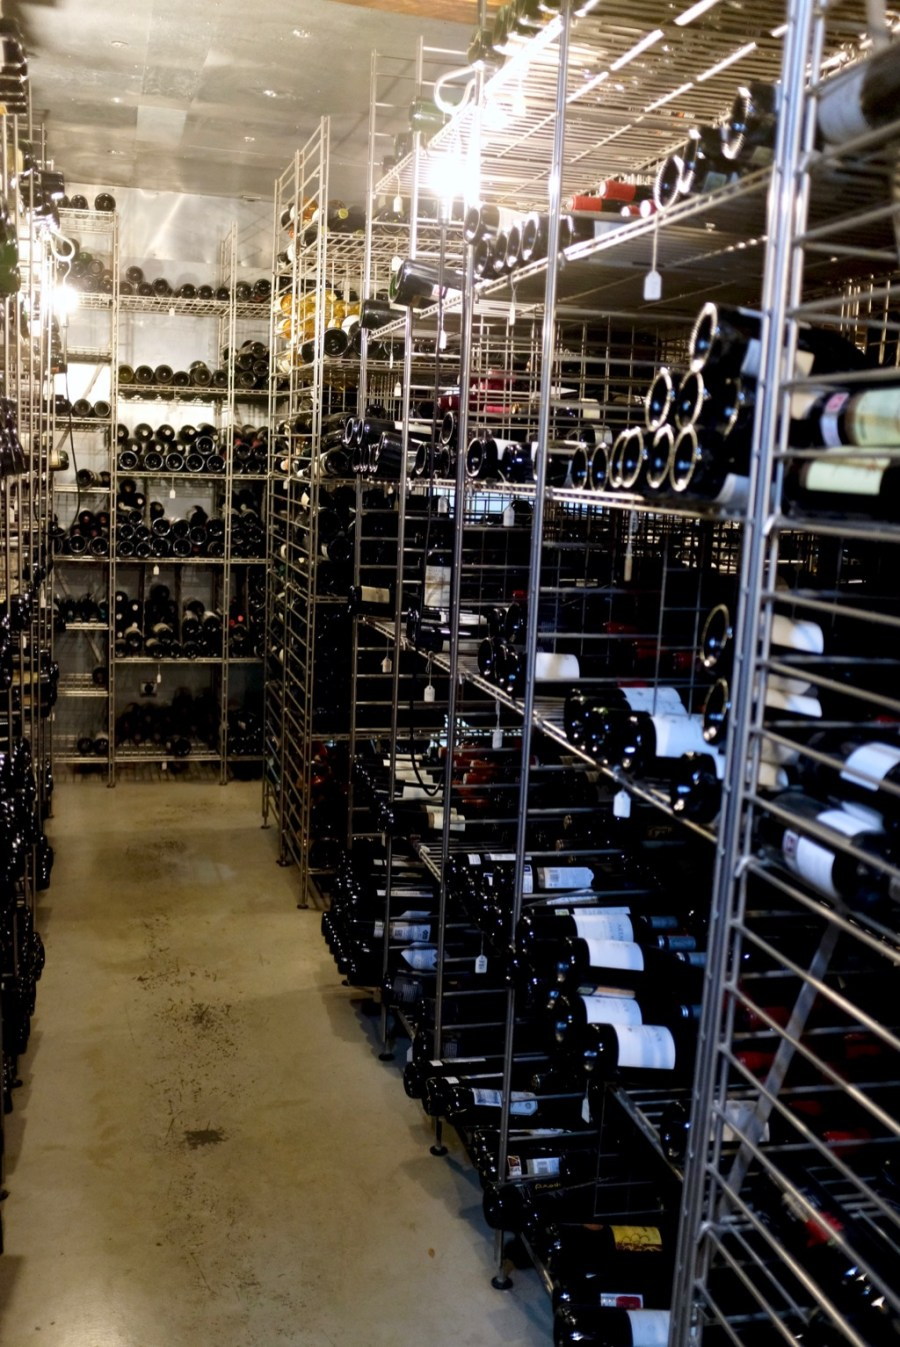 Arzak - Wine cellar with reportedly 100,000 bottles